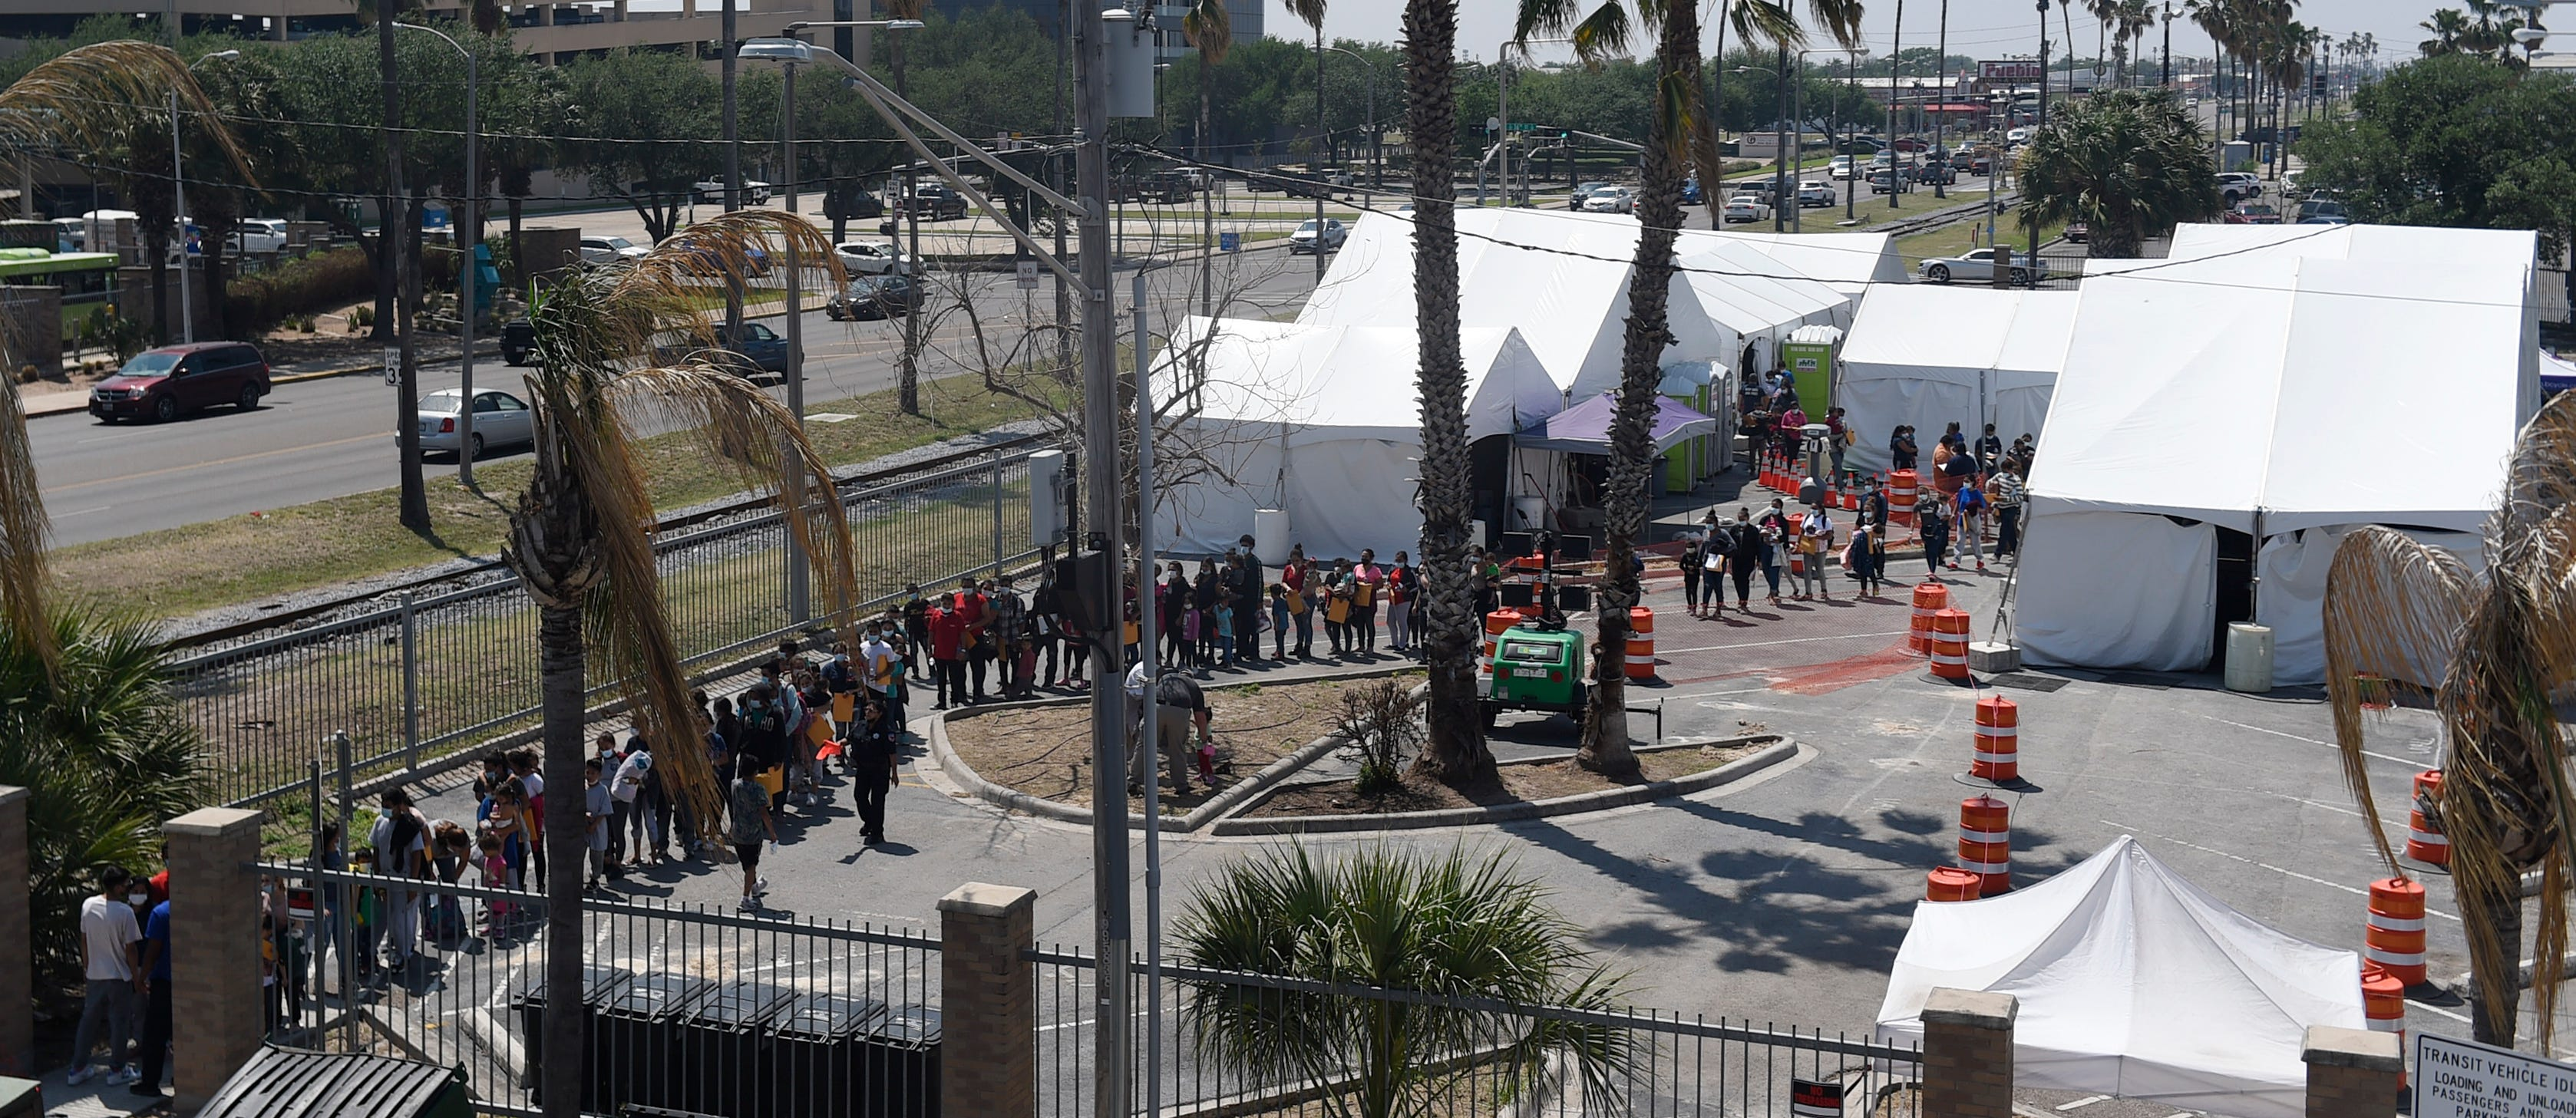 Migrants line up to walk to a bus station April 9 in McAllen, Texas. The tents are for coronavirus rapid testing before people travel to their asylum contacts.